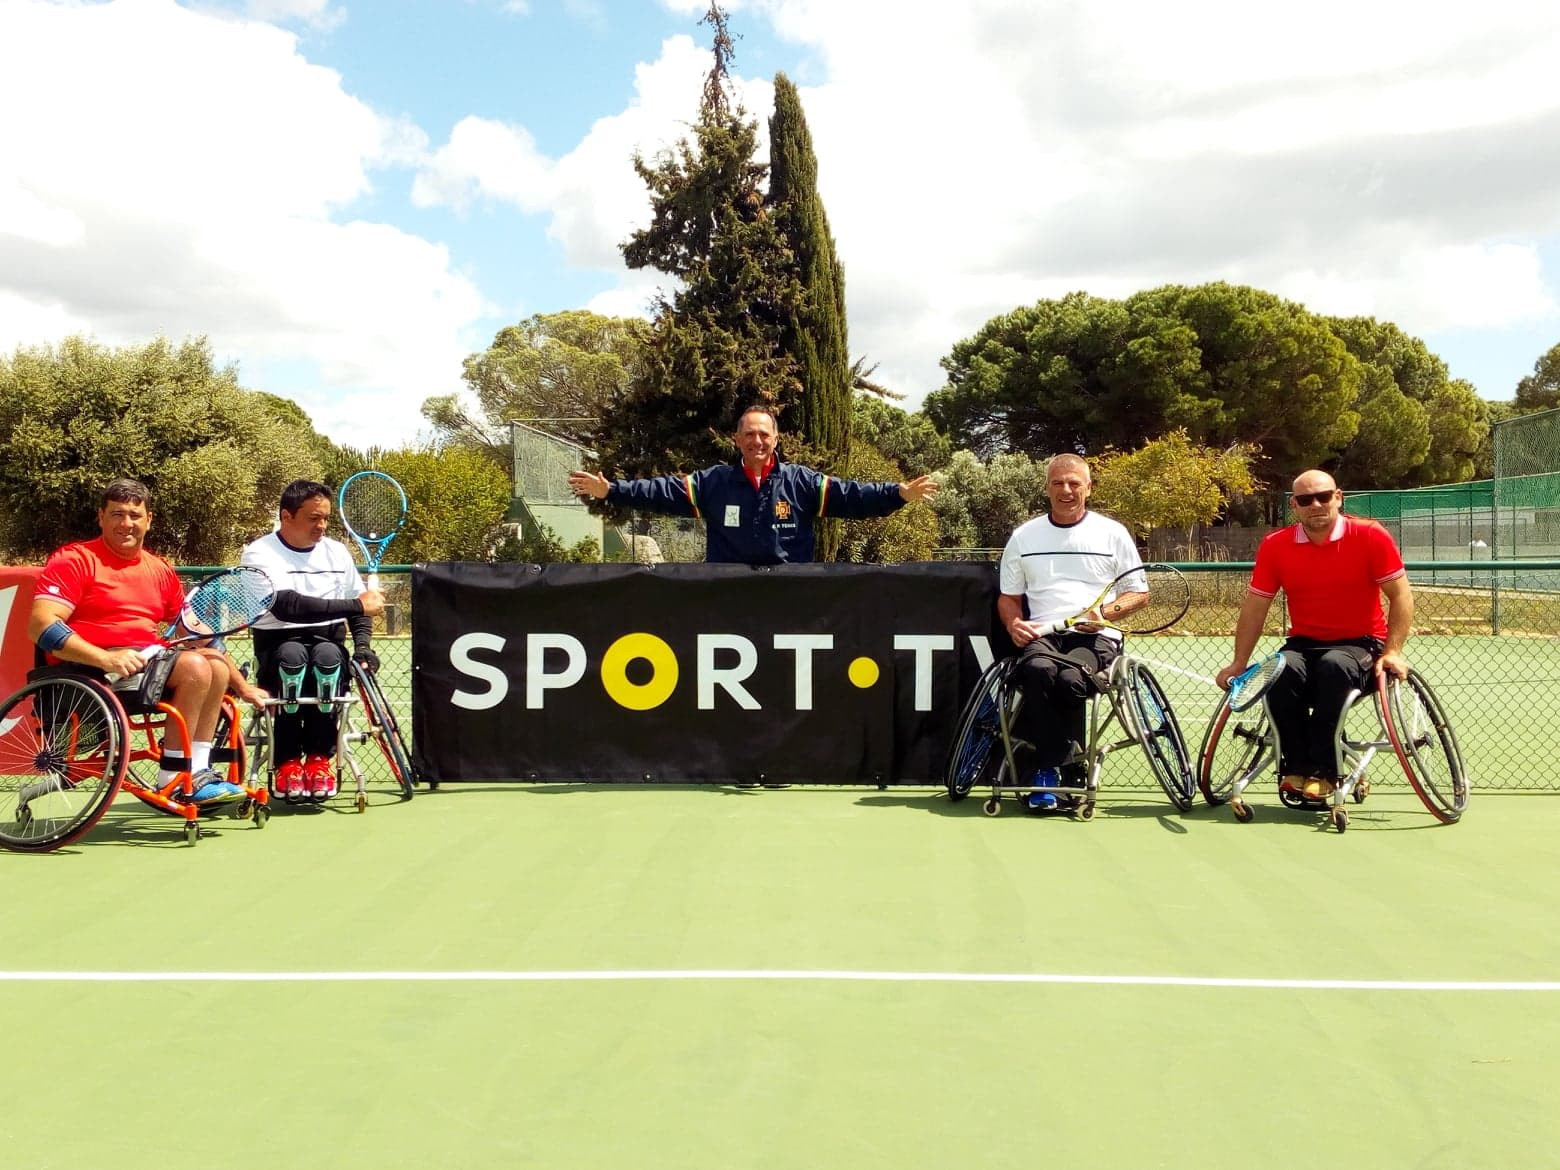 Today's finals went ahead in windy conditions after yesterday's semis were disrupted by rain ©Vilamoura Tennis Academy